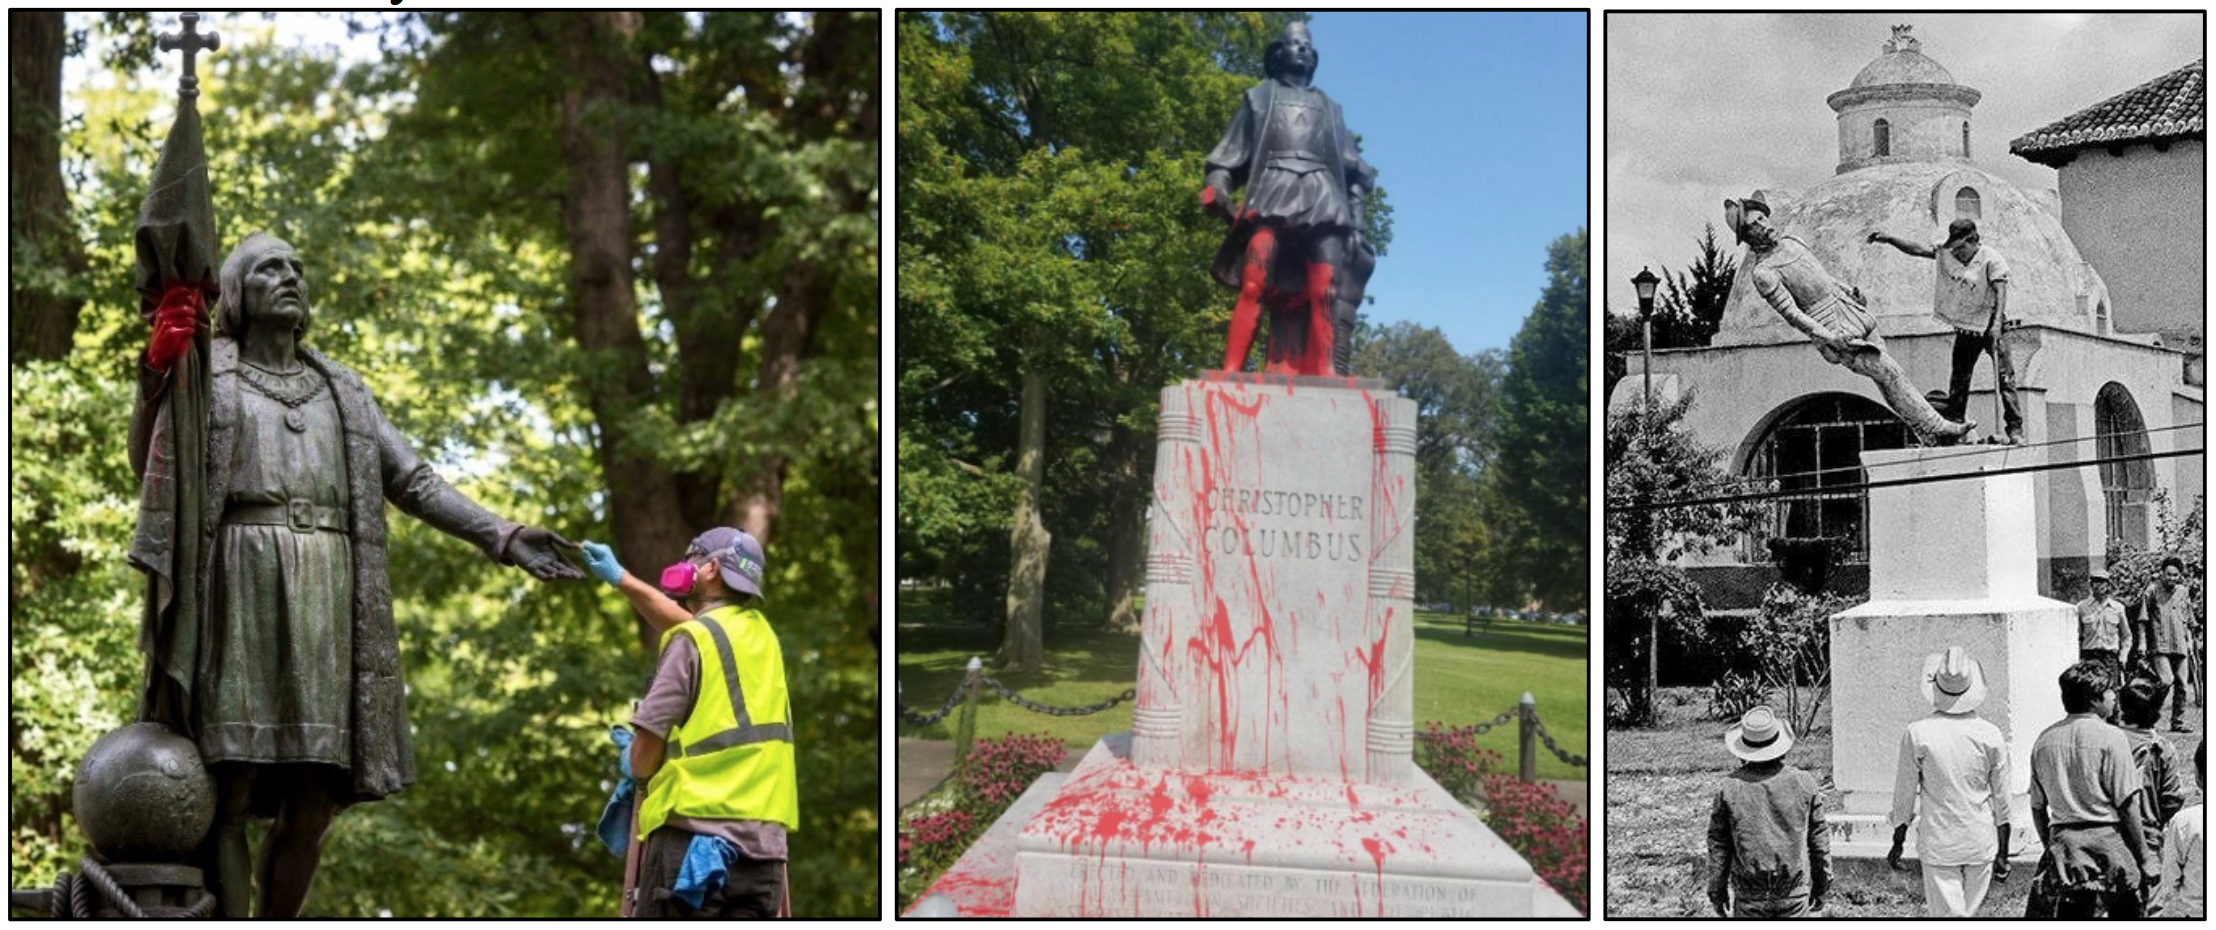 Two statues covered in red paint, and one statue being toppled by protesters.